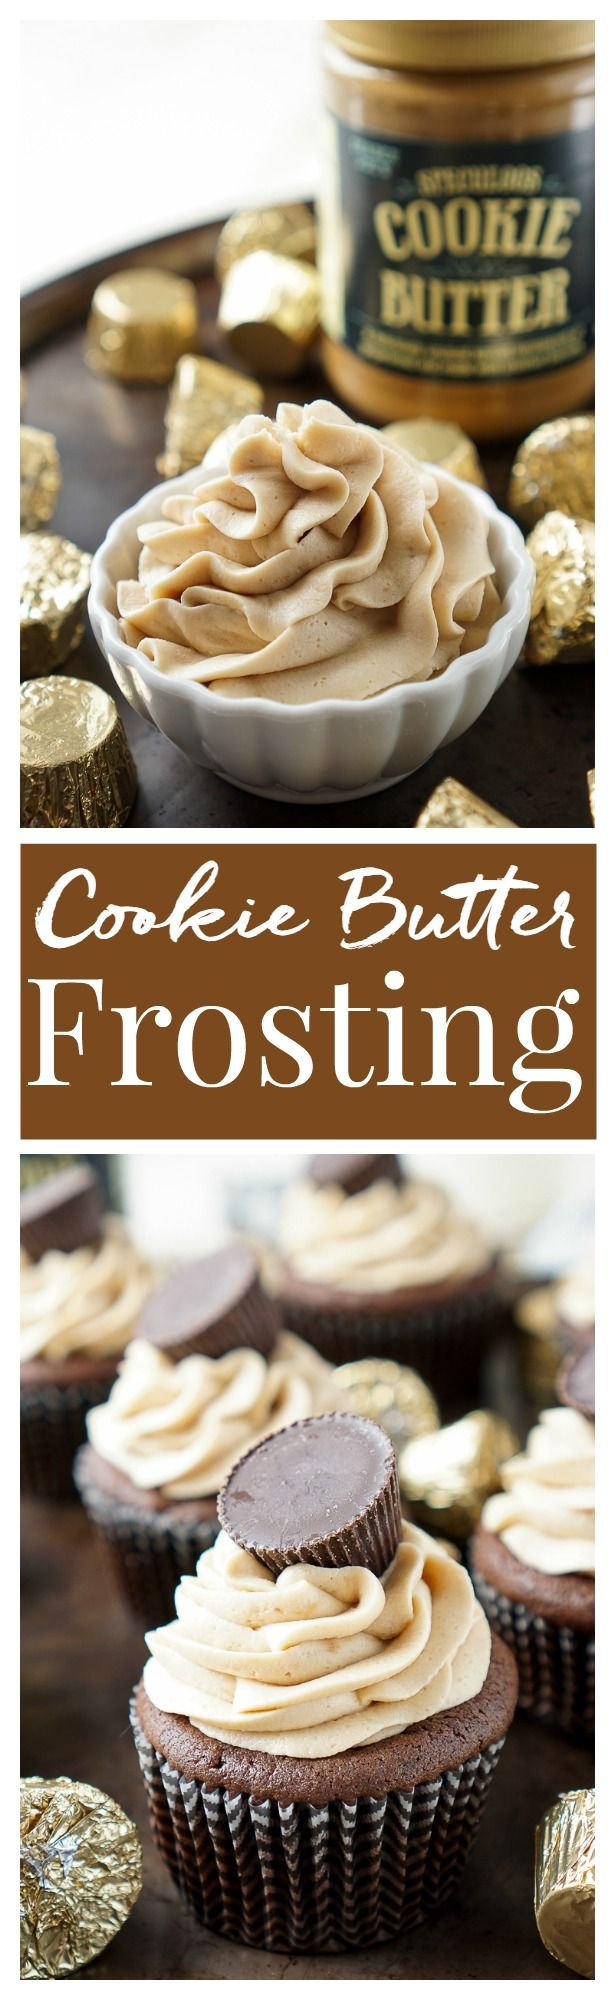 This Cookie Butter Frosting recipe is creamy and fluffy and perfect for topping…